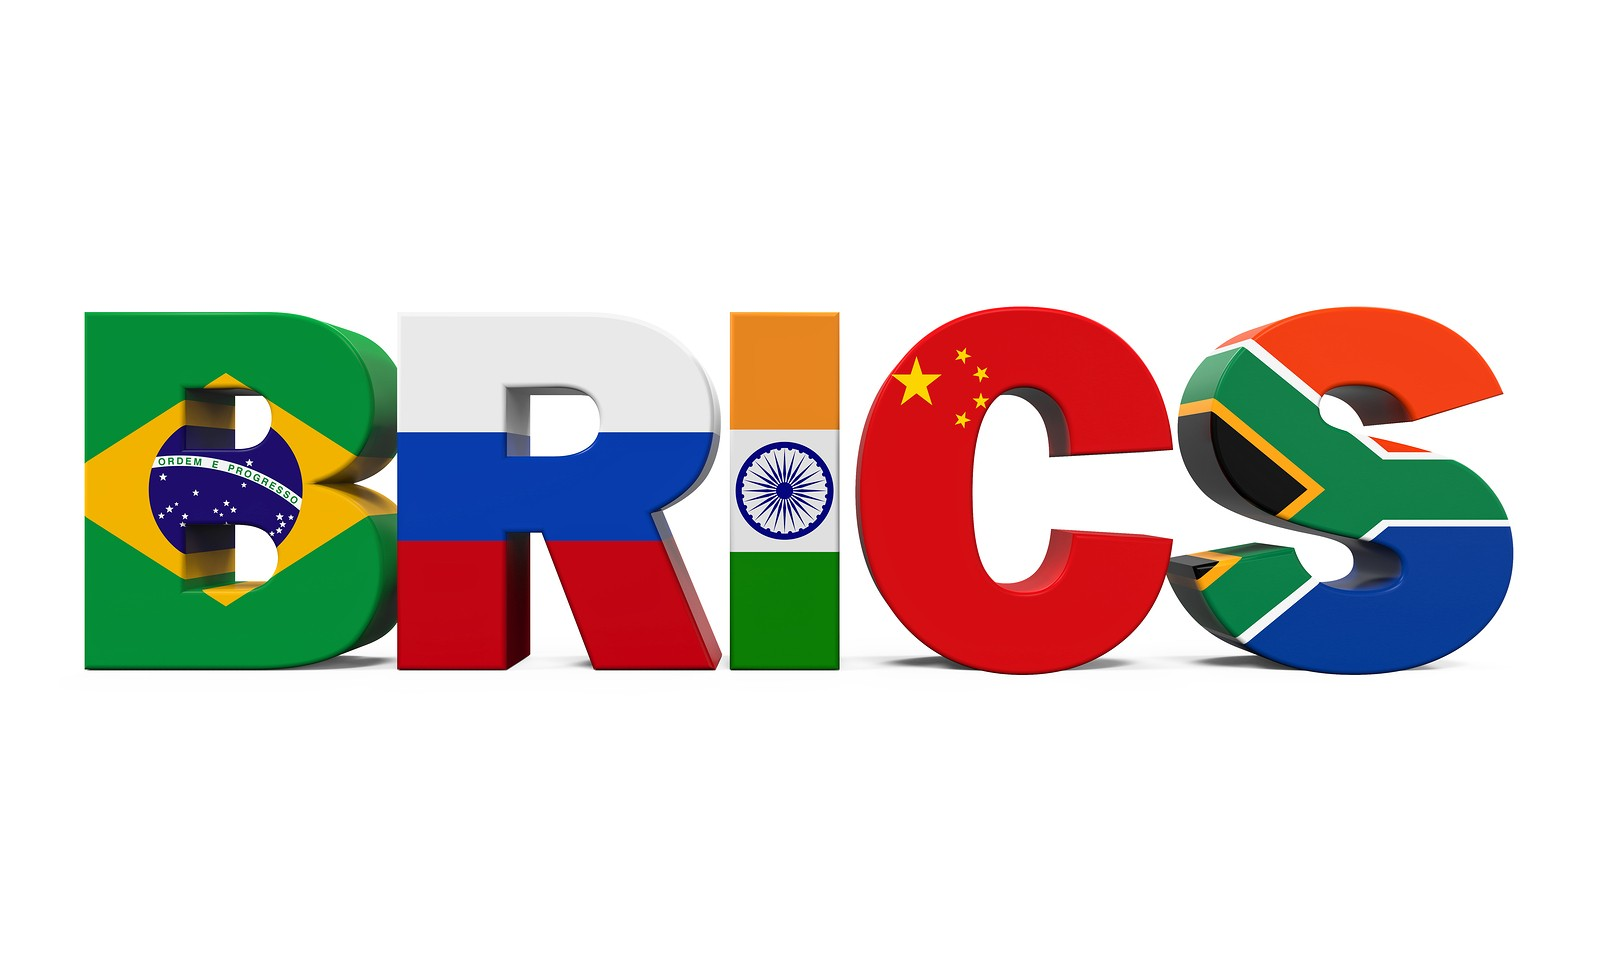 BRIC developing countries